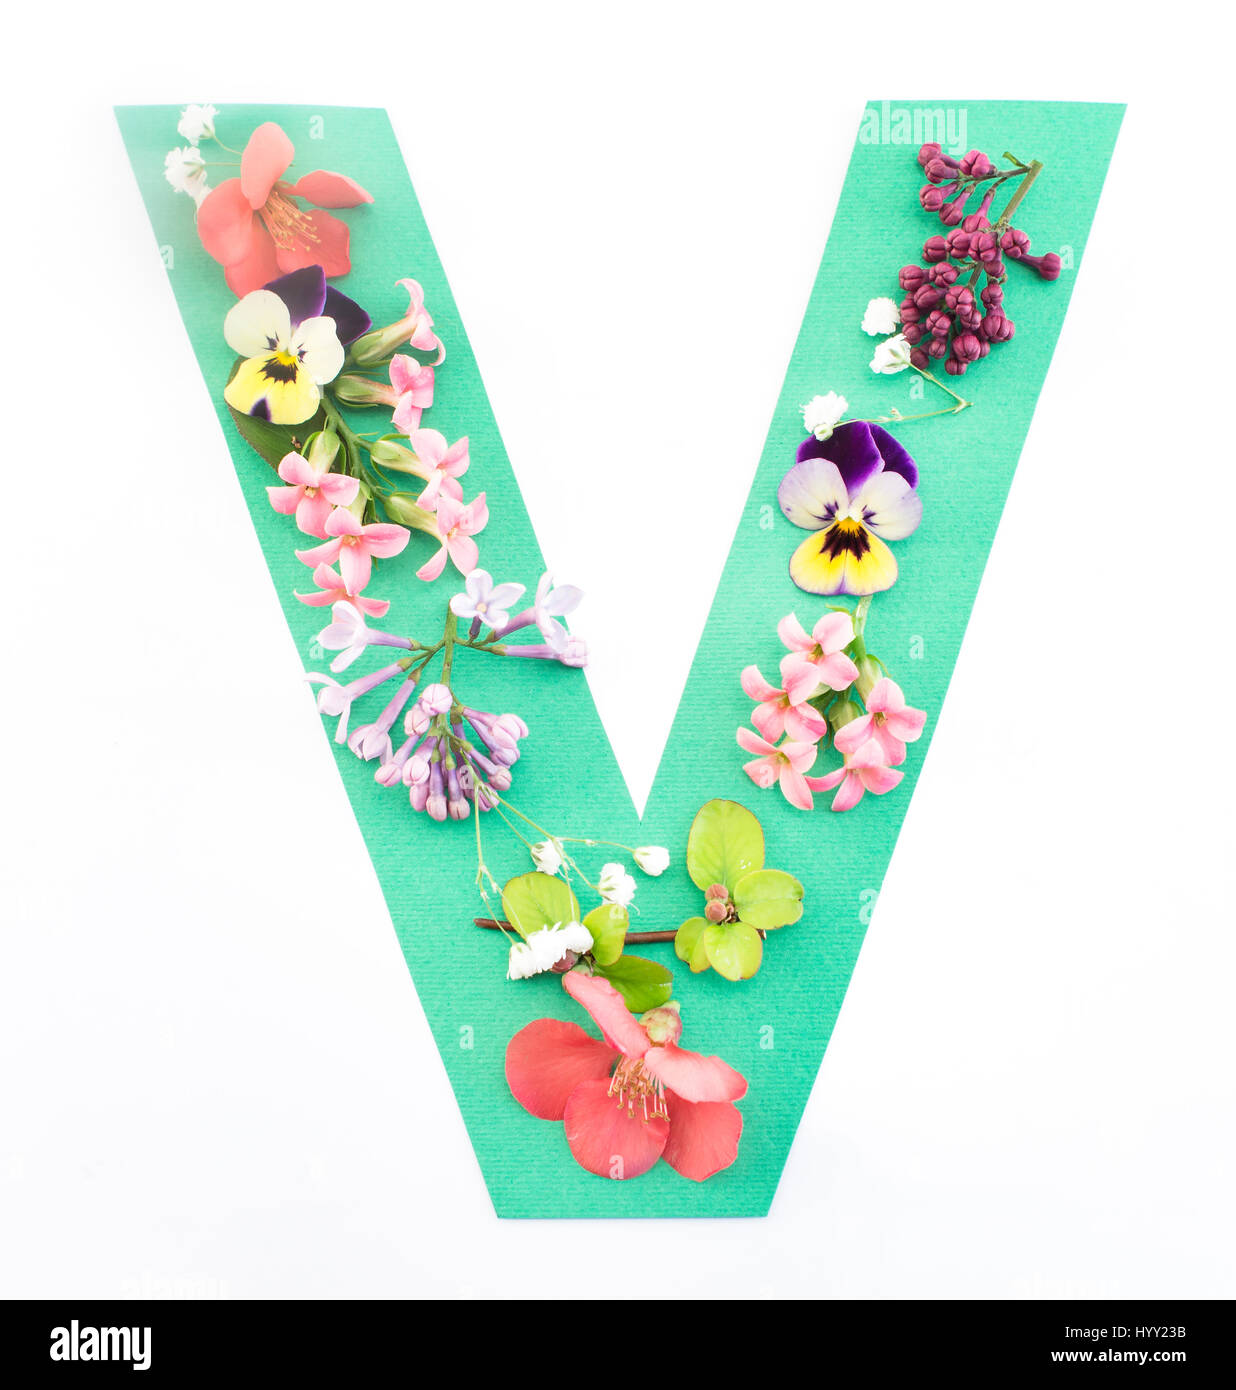 Floral font letter v stock photos floral font letter v stock letter v made of spring flowers and paper on white background stock image altavistaventures Images